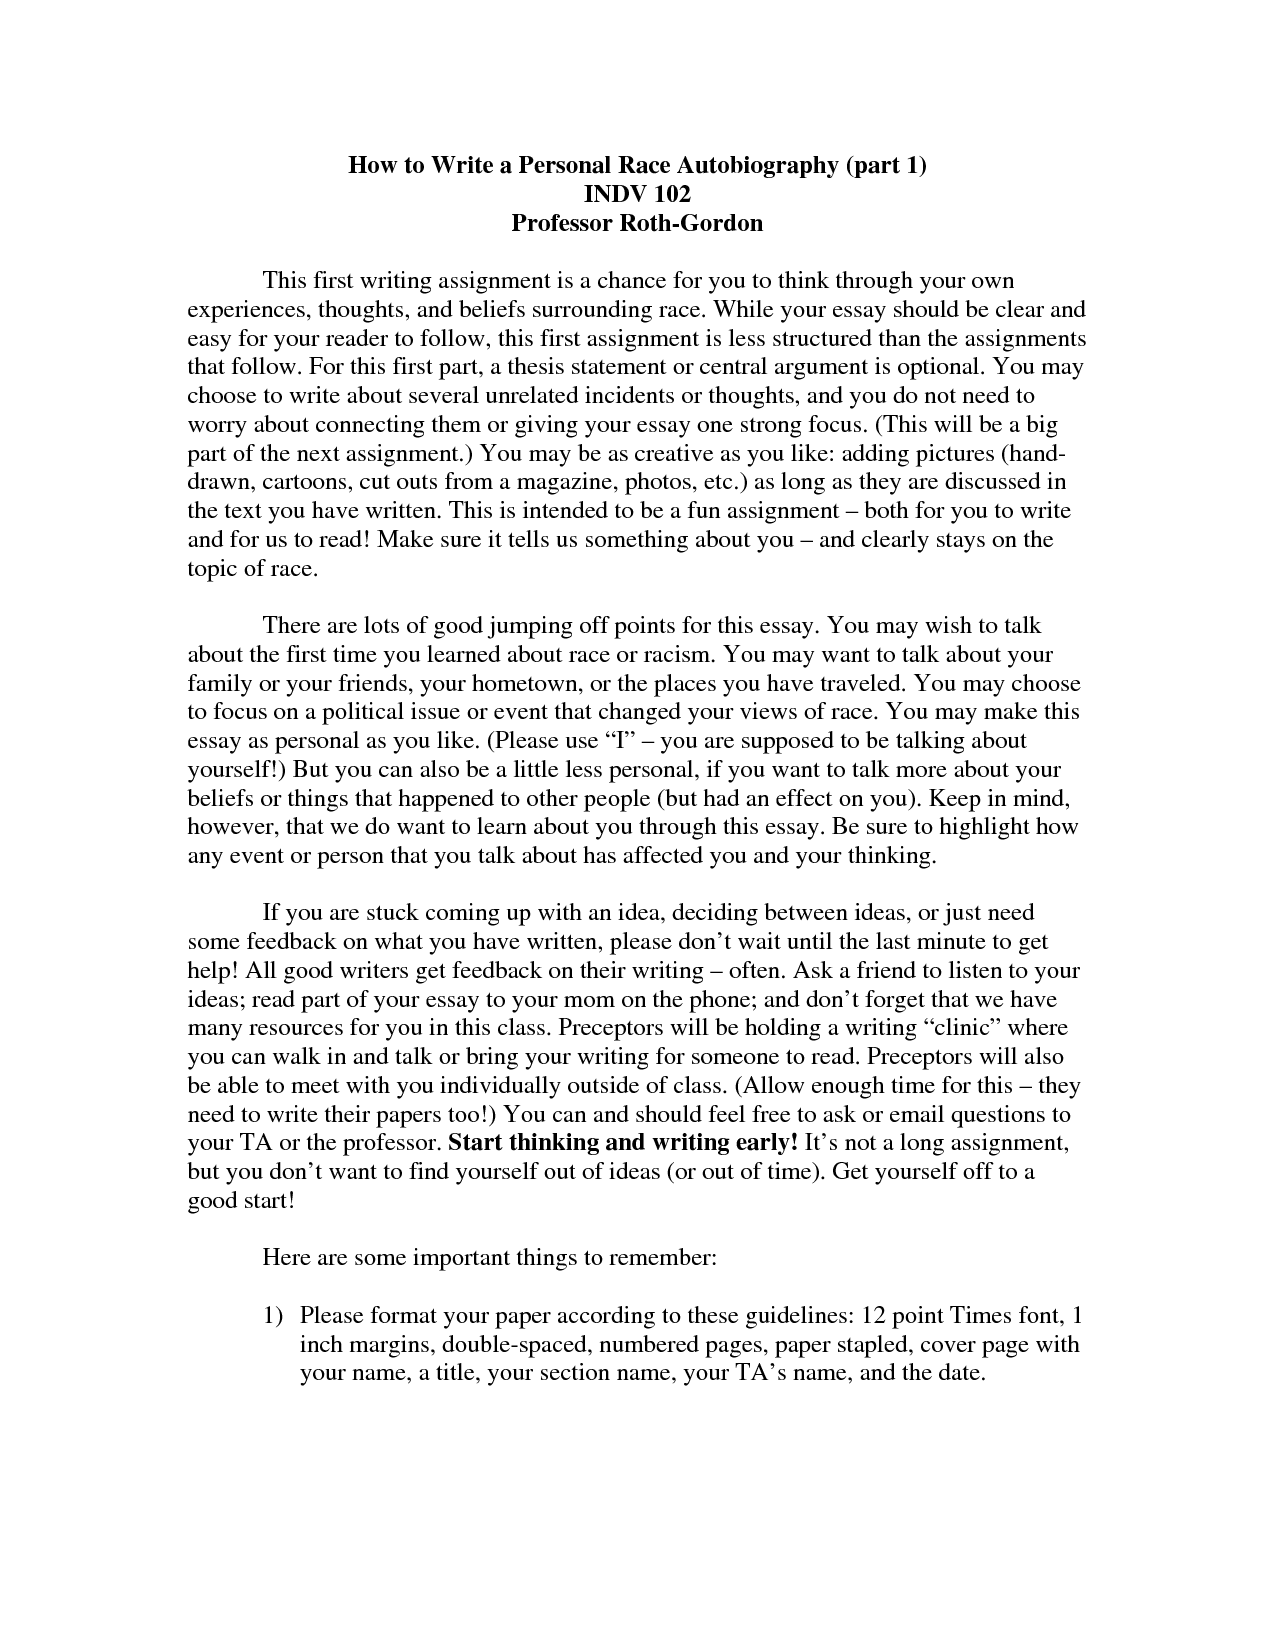 020 Essay Example Autobiography Best Photos Of Personal Narrative An Autobiographical How To Write Writing Outline For Scholarship College Admissions Unique Pdf Examples Full